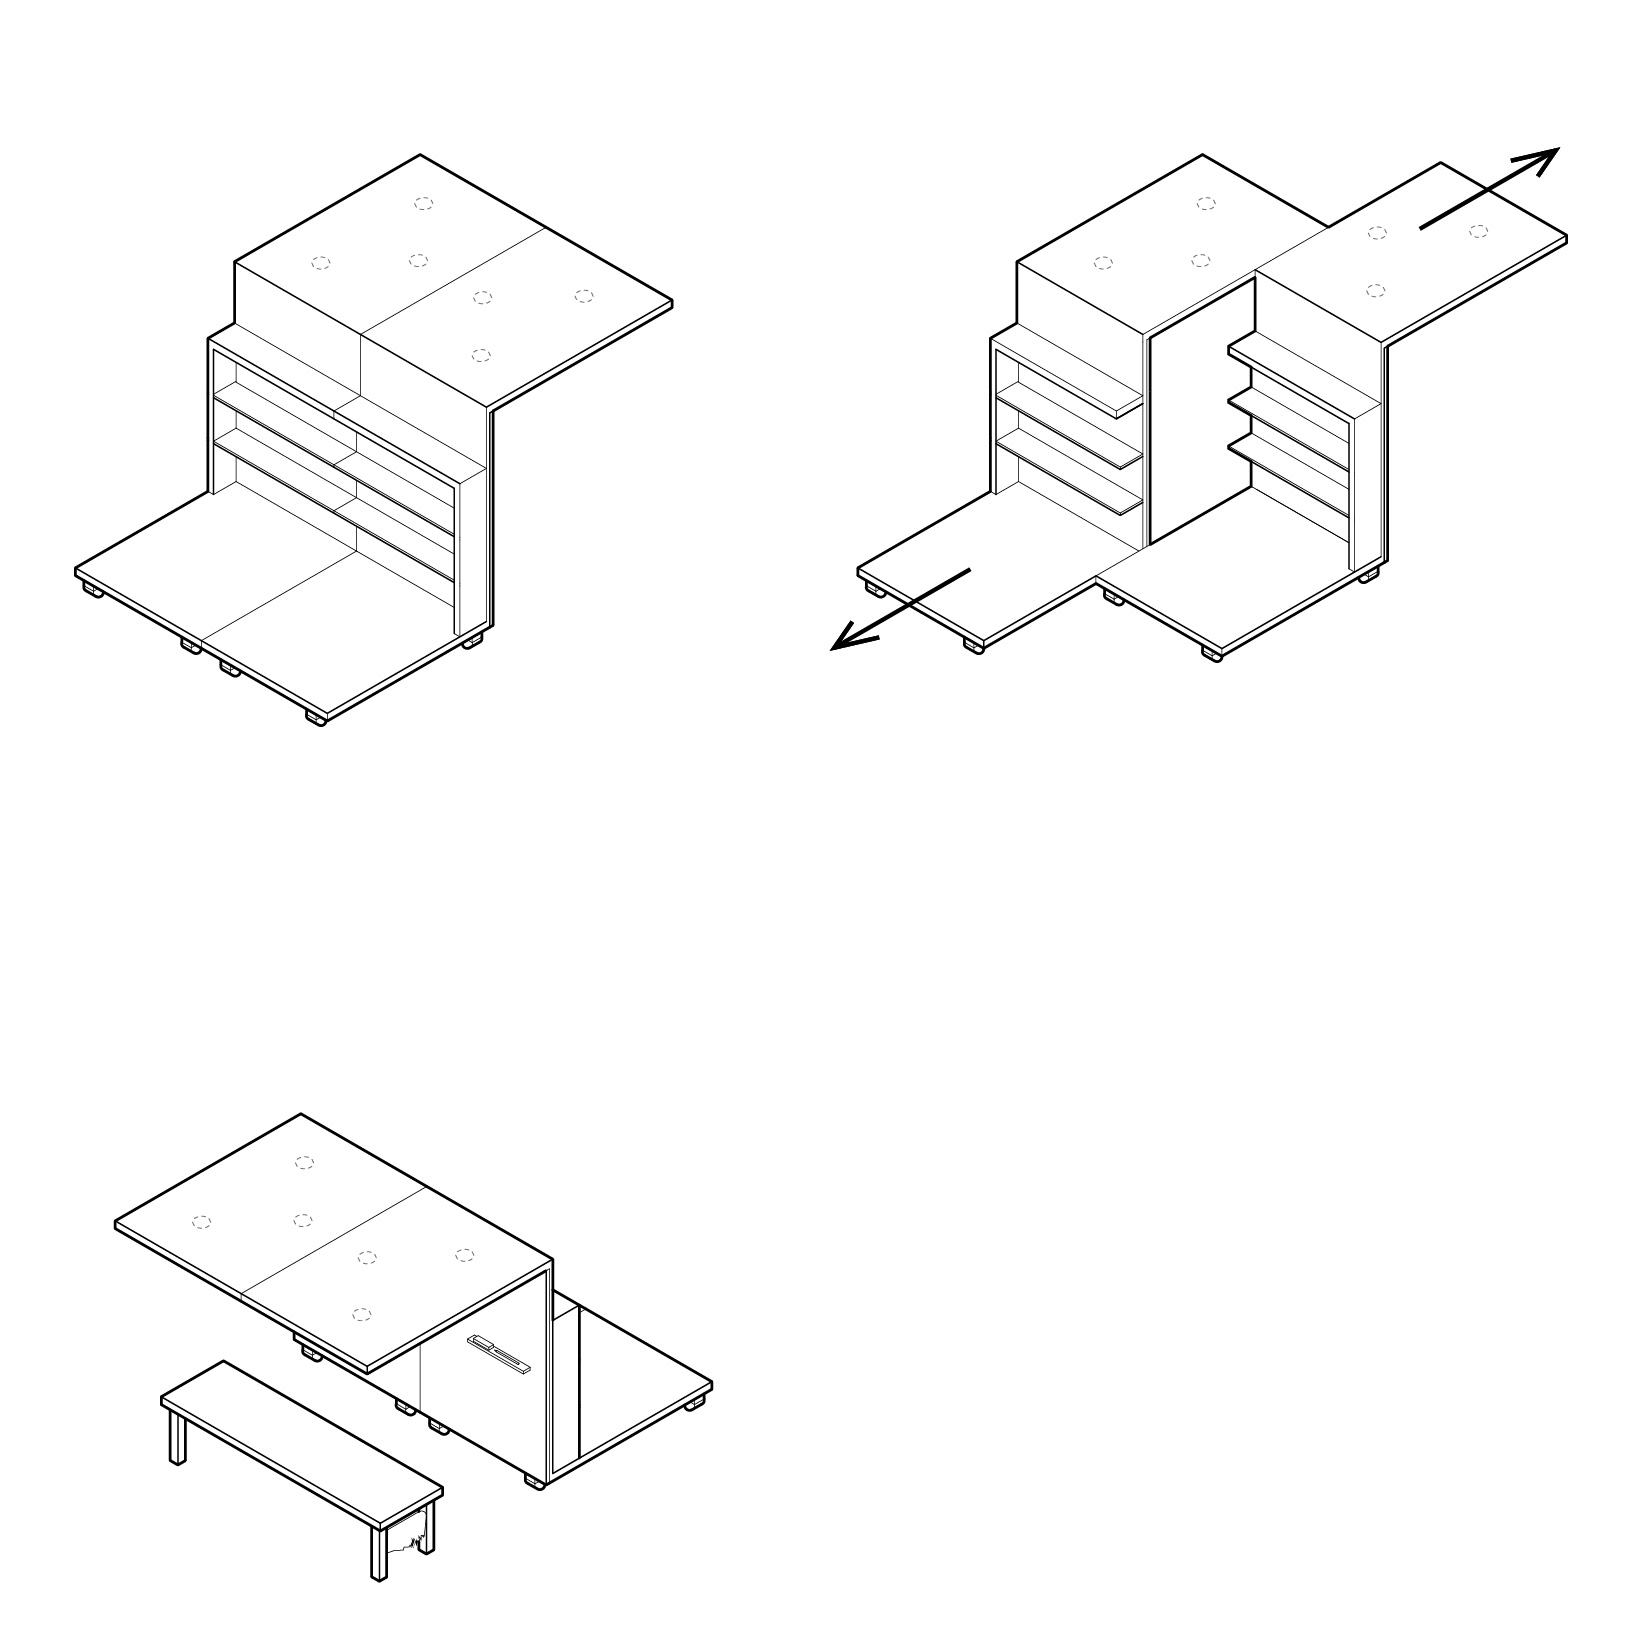 Axonometric diagrams for possible movable soft seating/ reading area situated within the ThinkLab space